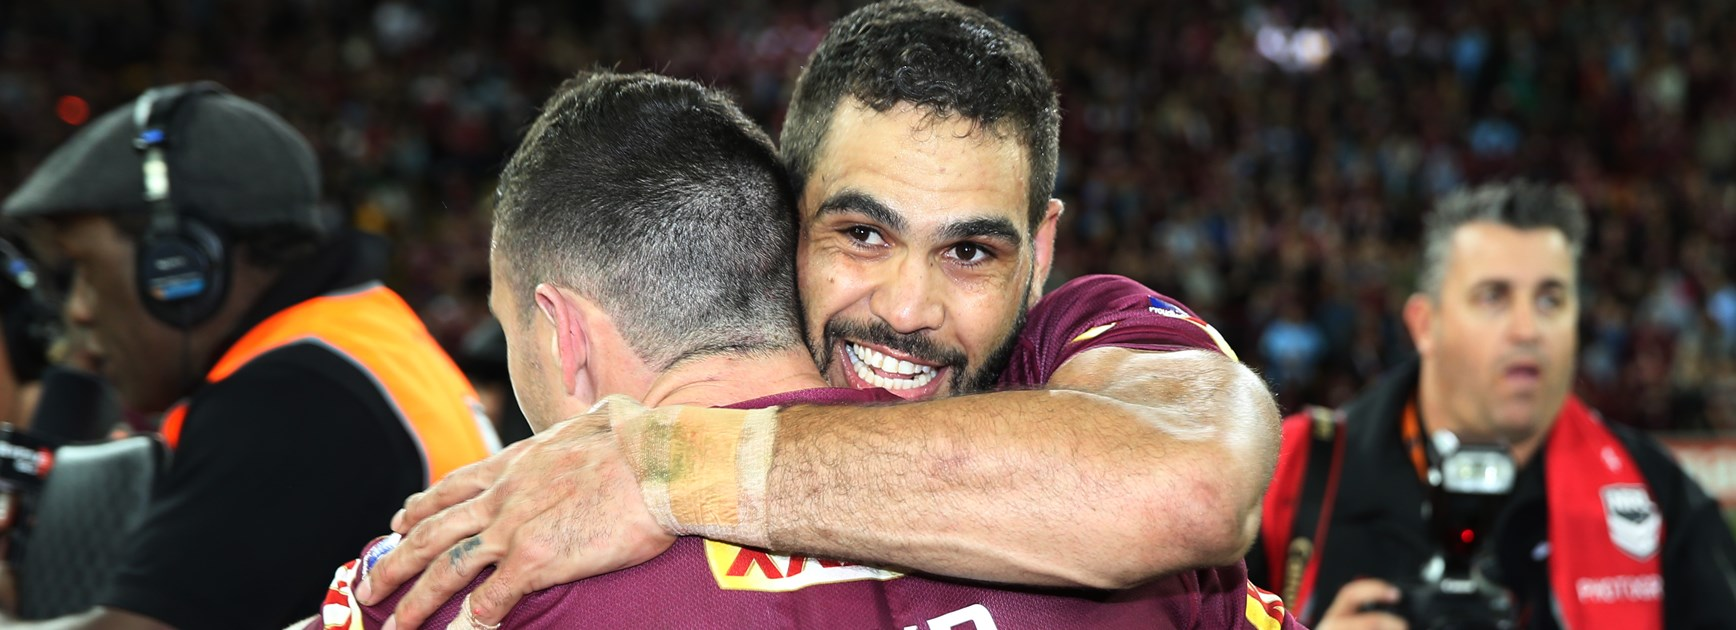 GI wants Maroons to find spot for Darius